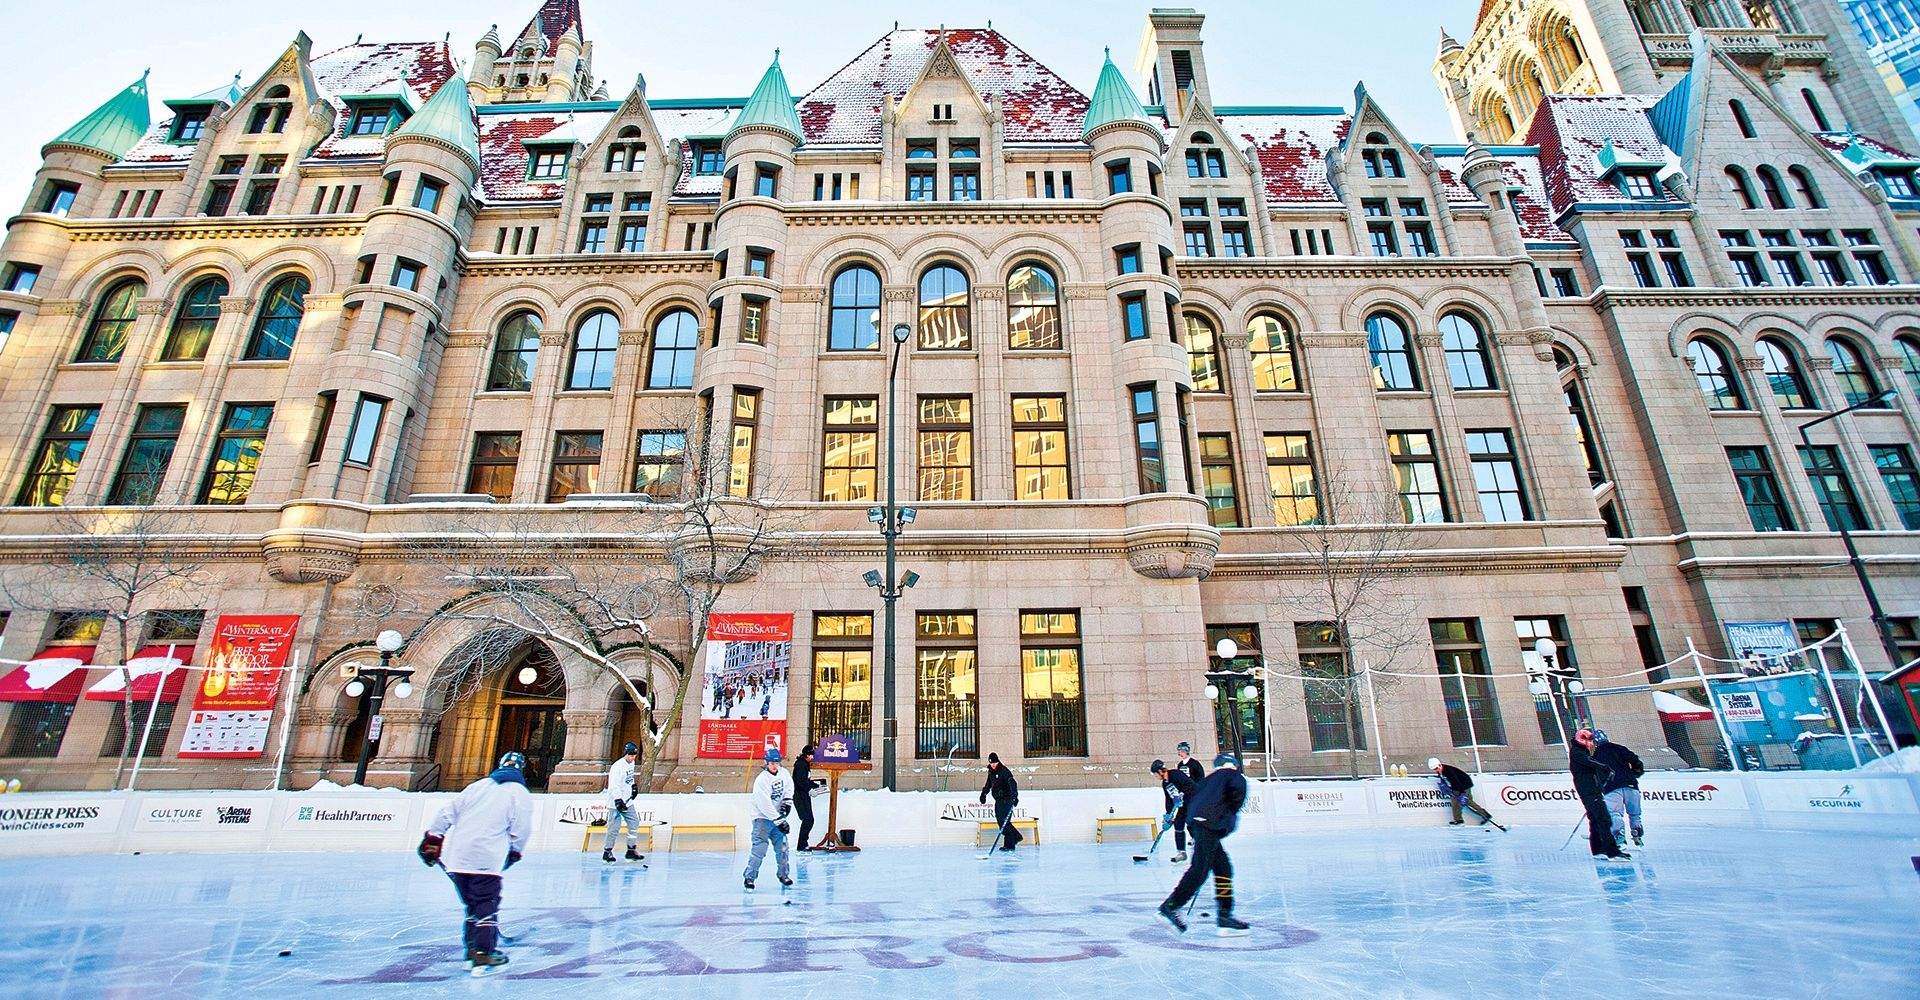 Wells Fargo ice rink in front the Landmark Center